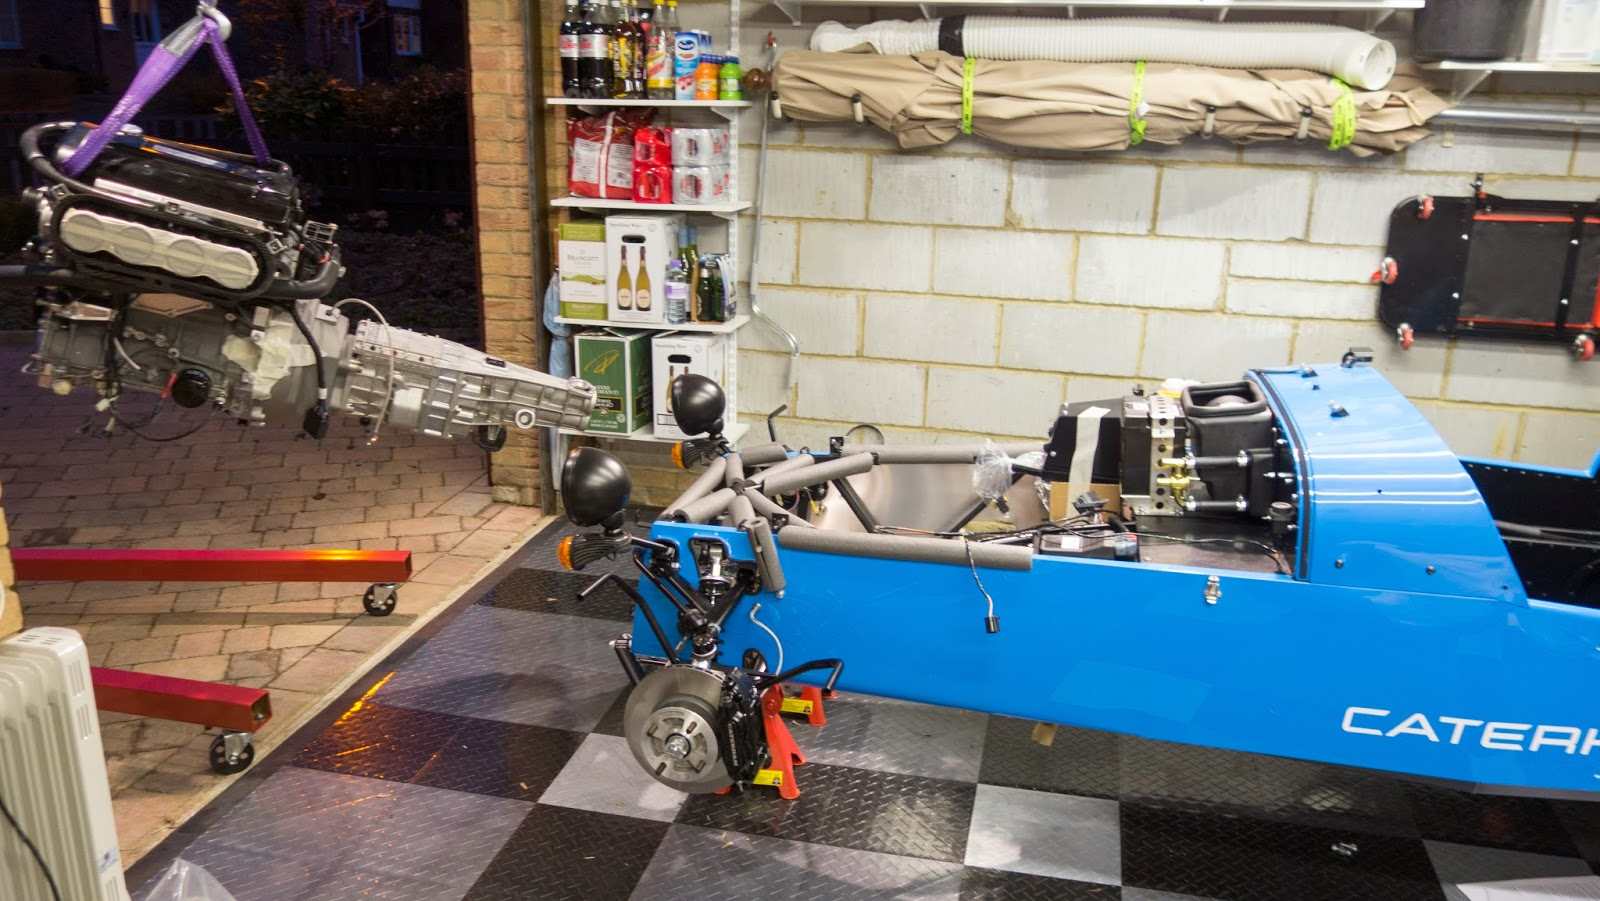 R500 engine with gearbox attached and strapped to engine crane.